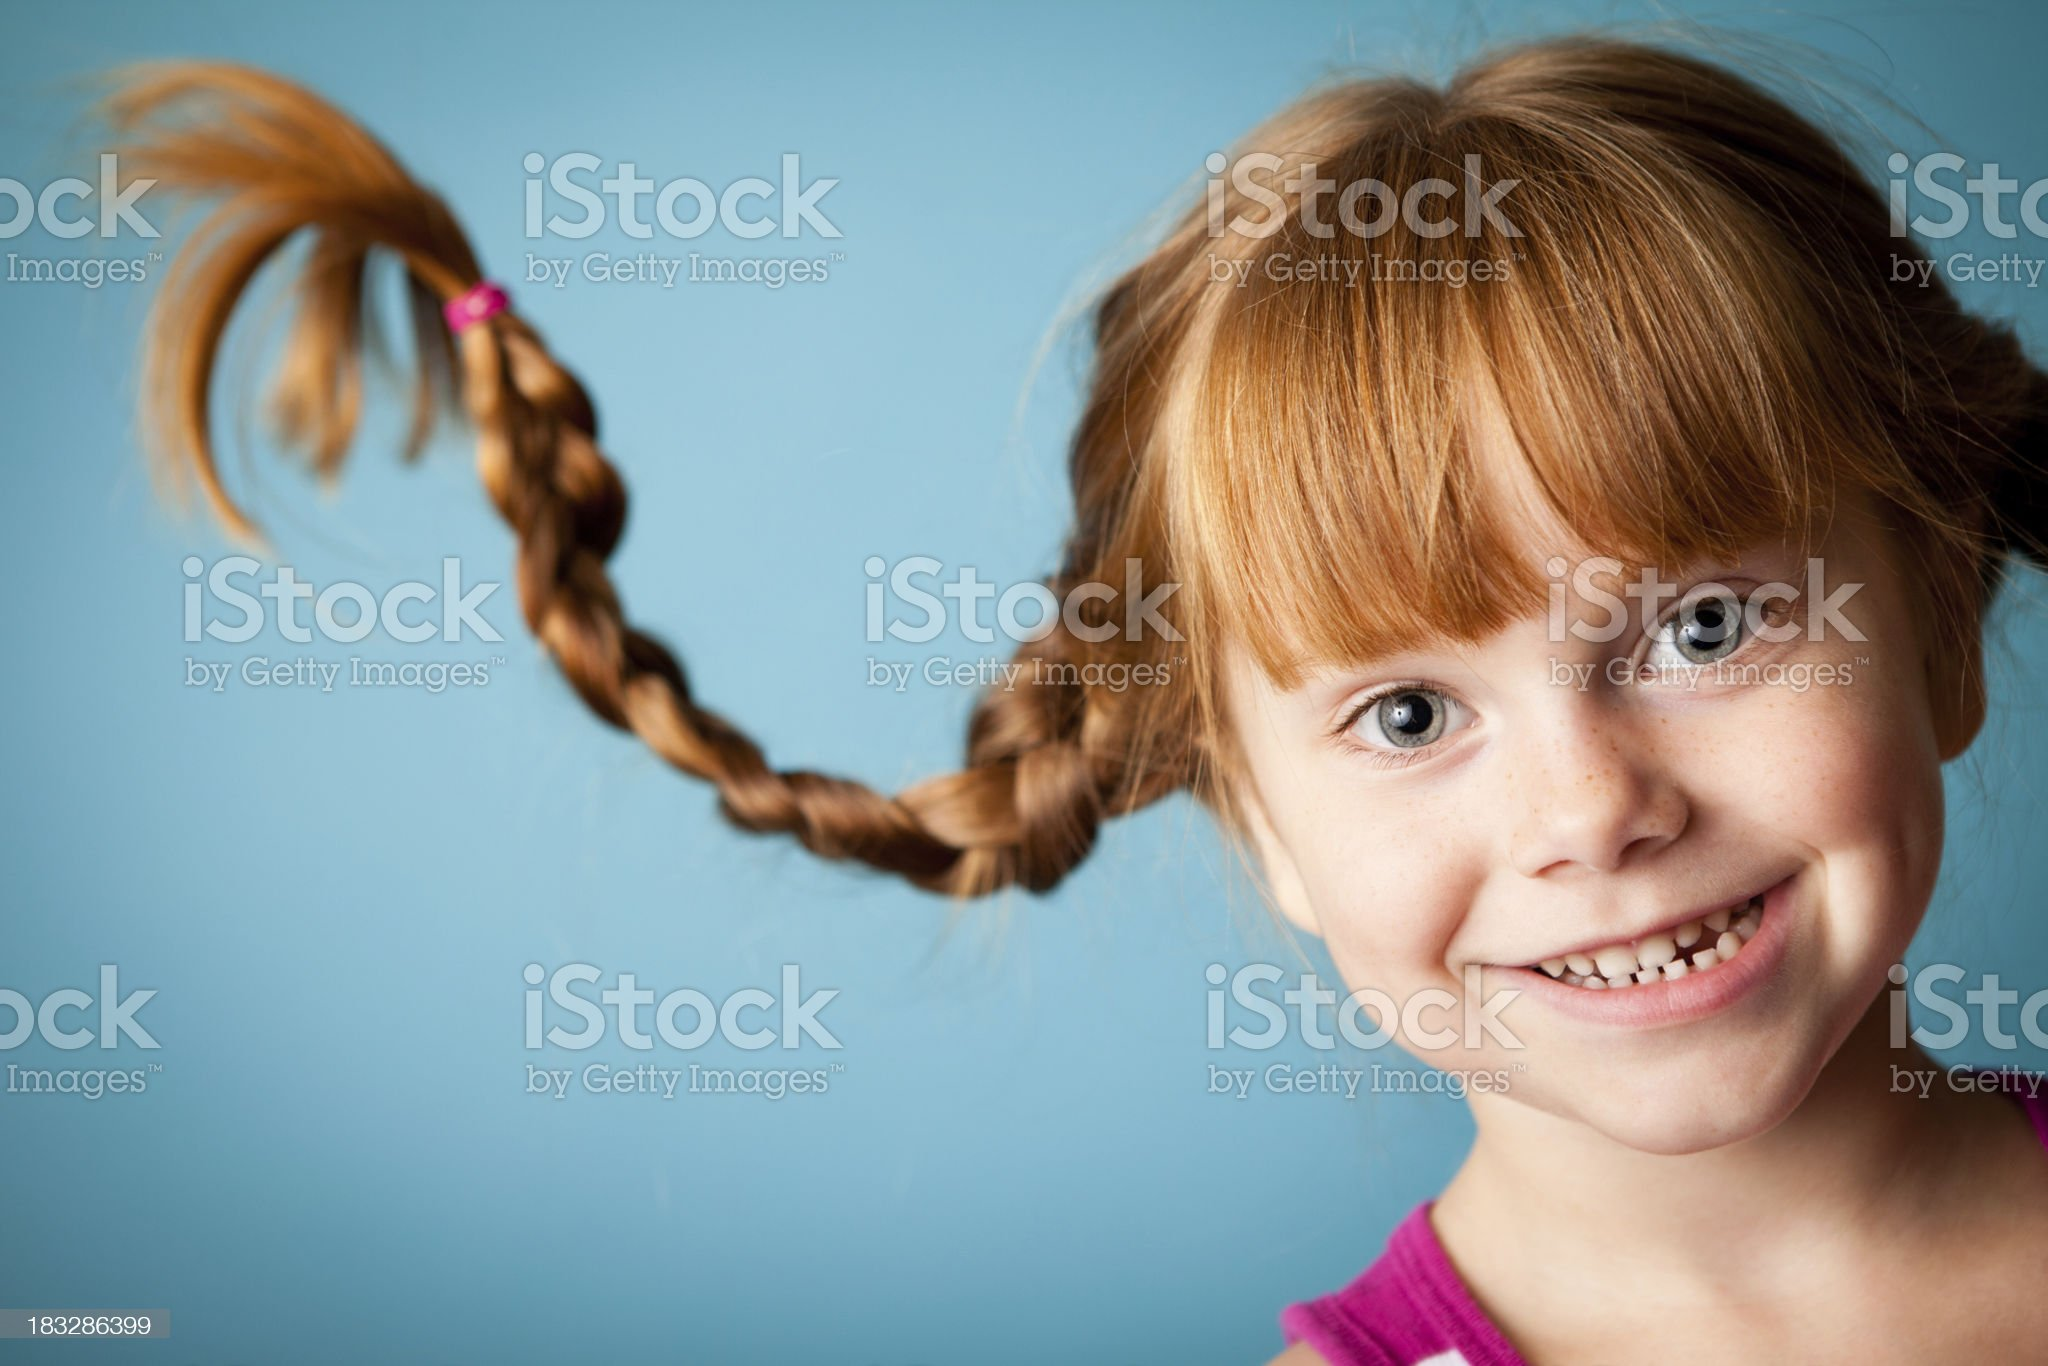 Red-Haired Girl with Upward Braids and a Big Smile royalty-free stock photo